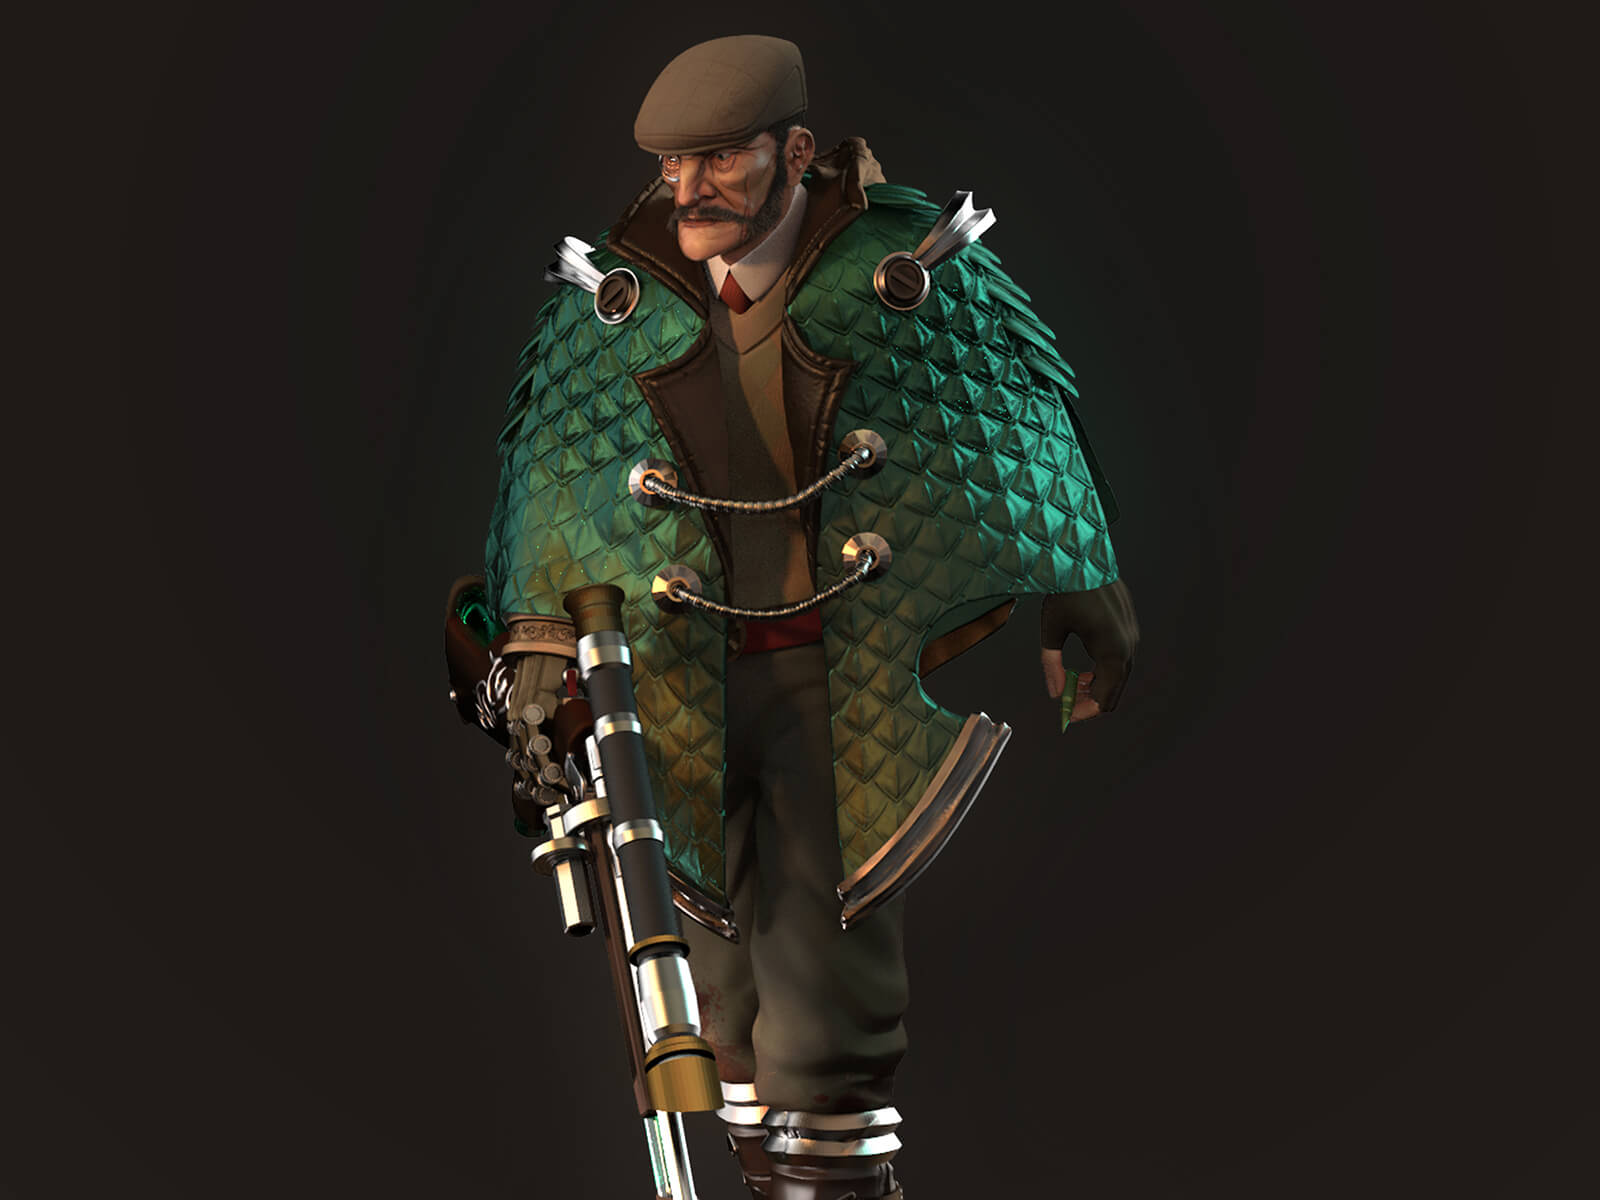 A traditionally dressed man with a futuristic cape and large gun